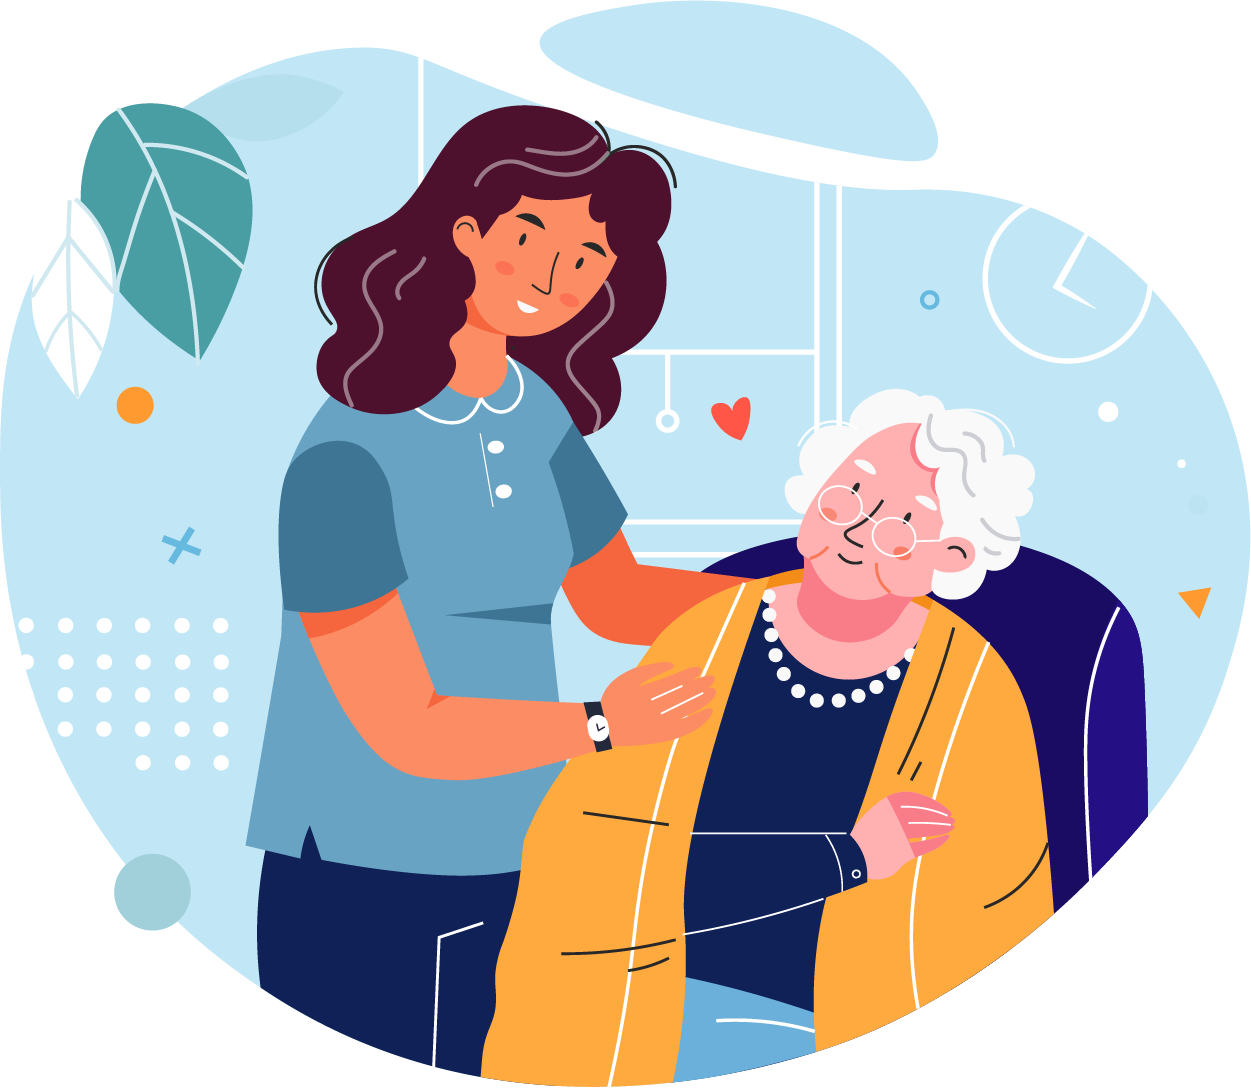 Illustration with a nurse at work